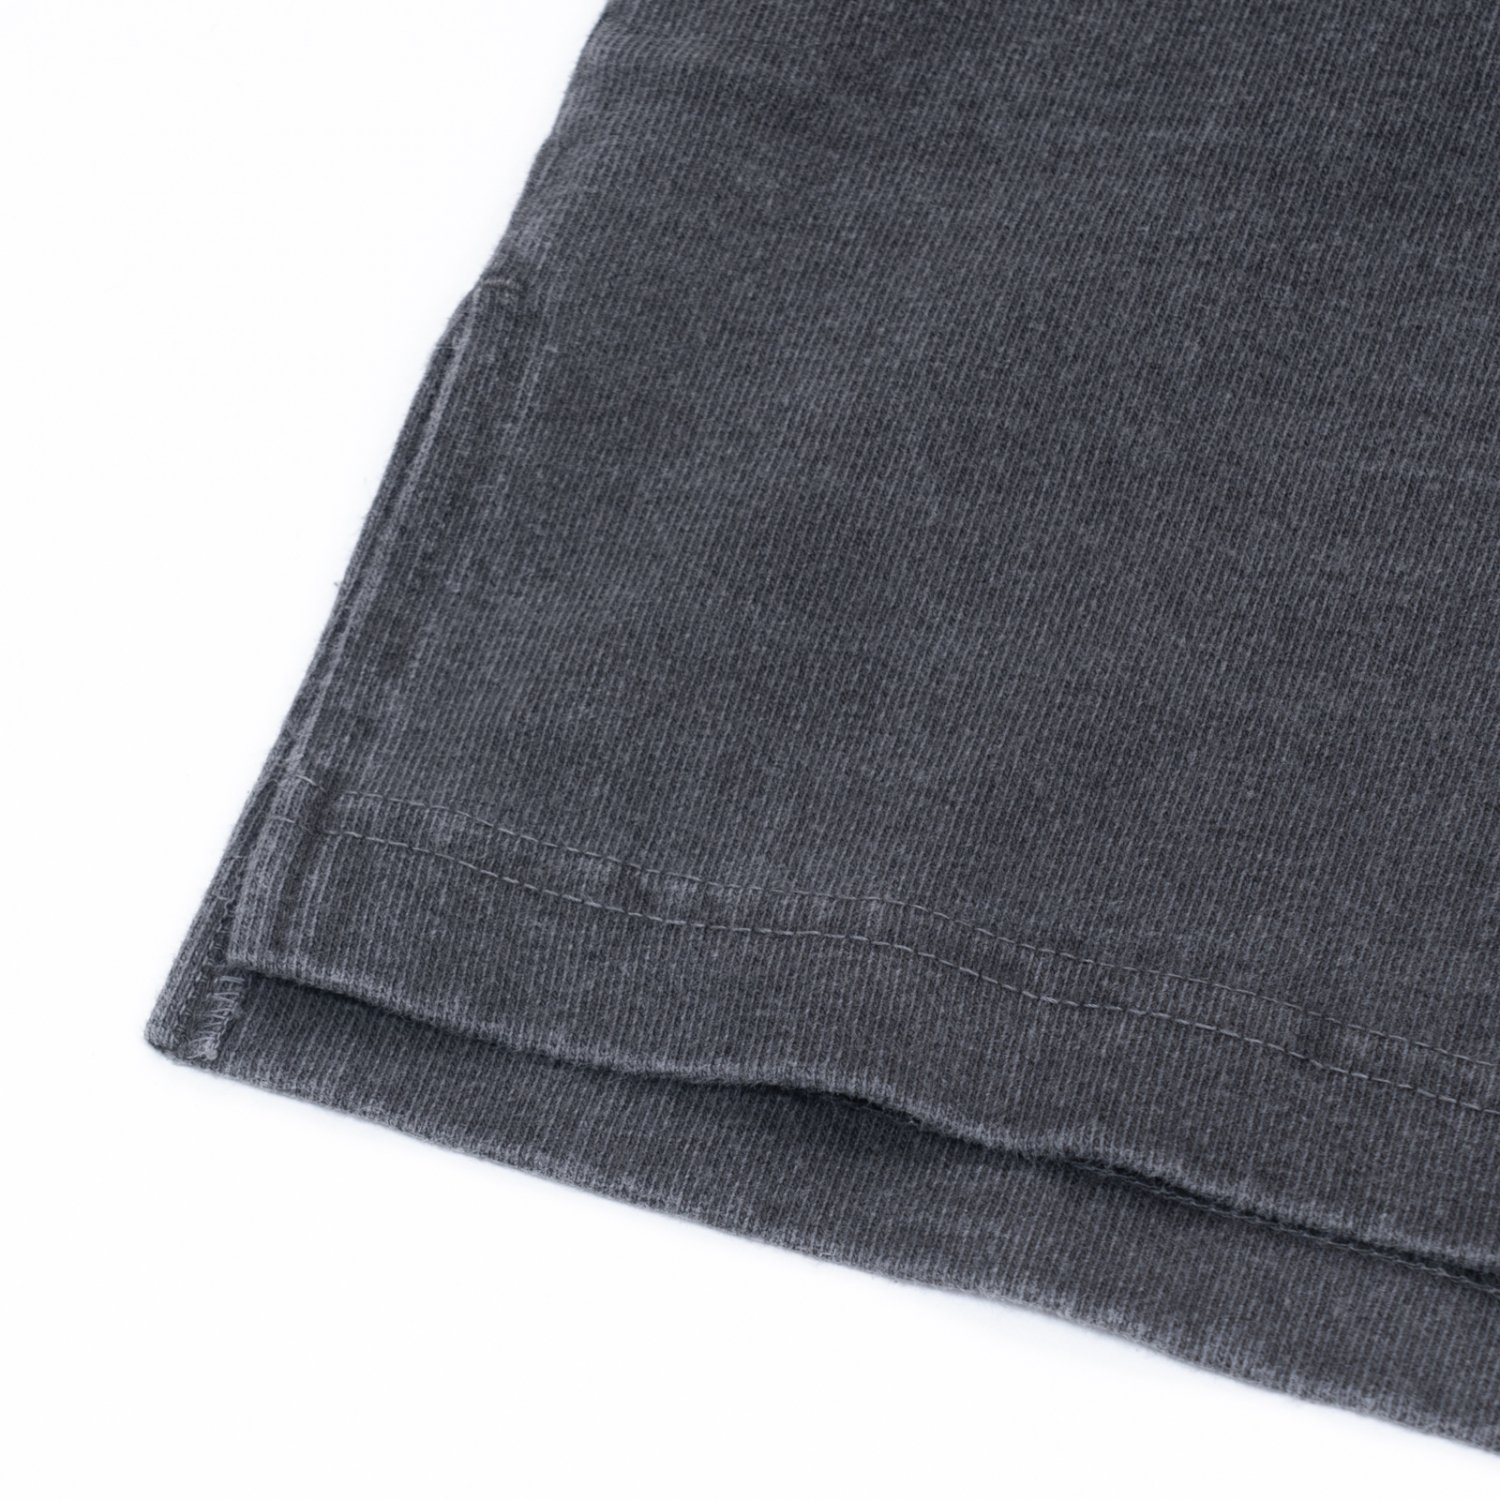 hobo * ARTISAN S/S CREW NECK TEE COTTON HEAVYWEIGHT JERSEY * Charcoal Dyed